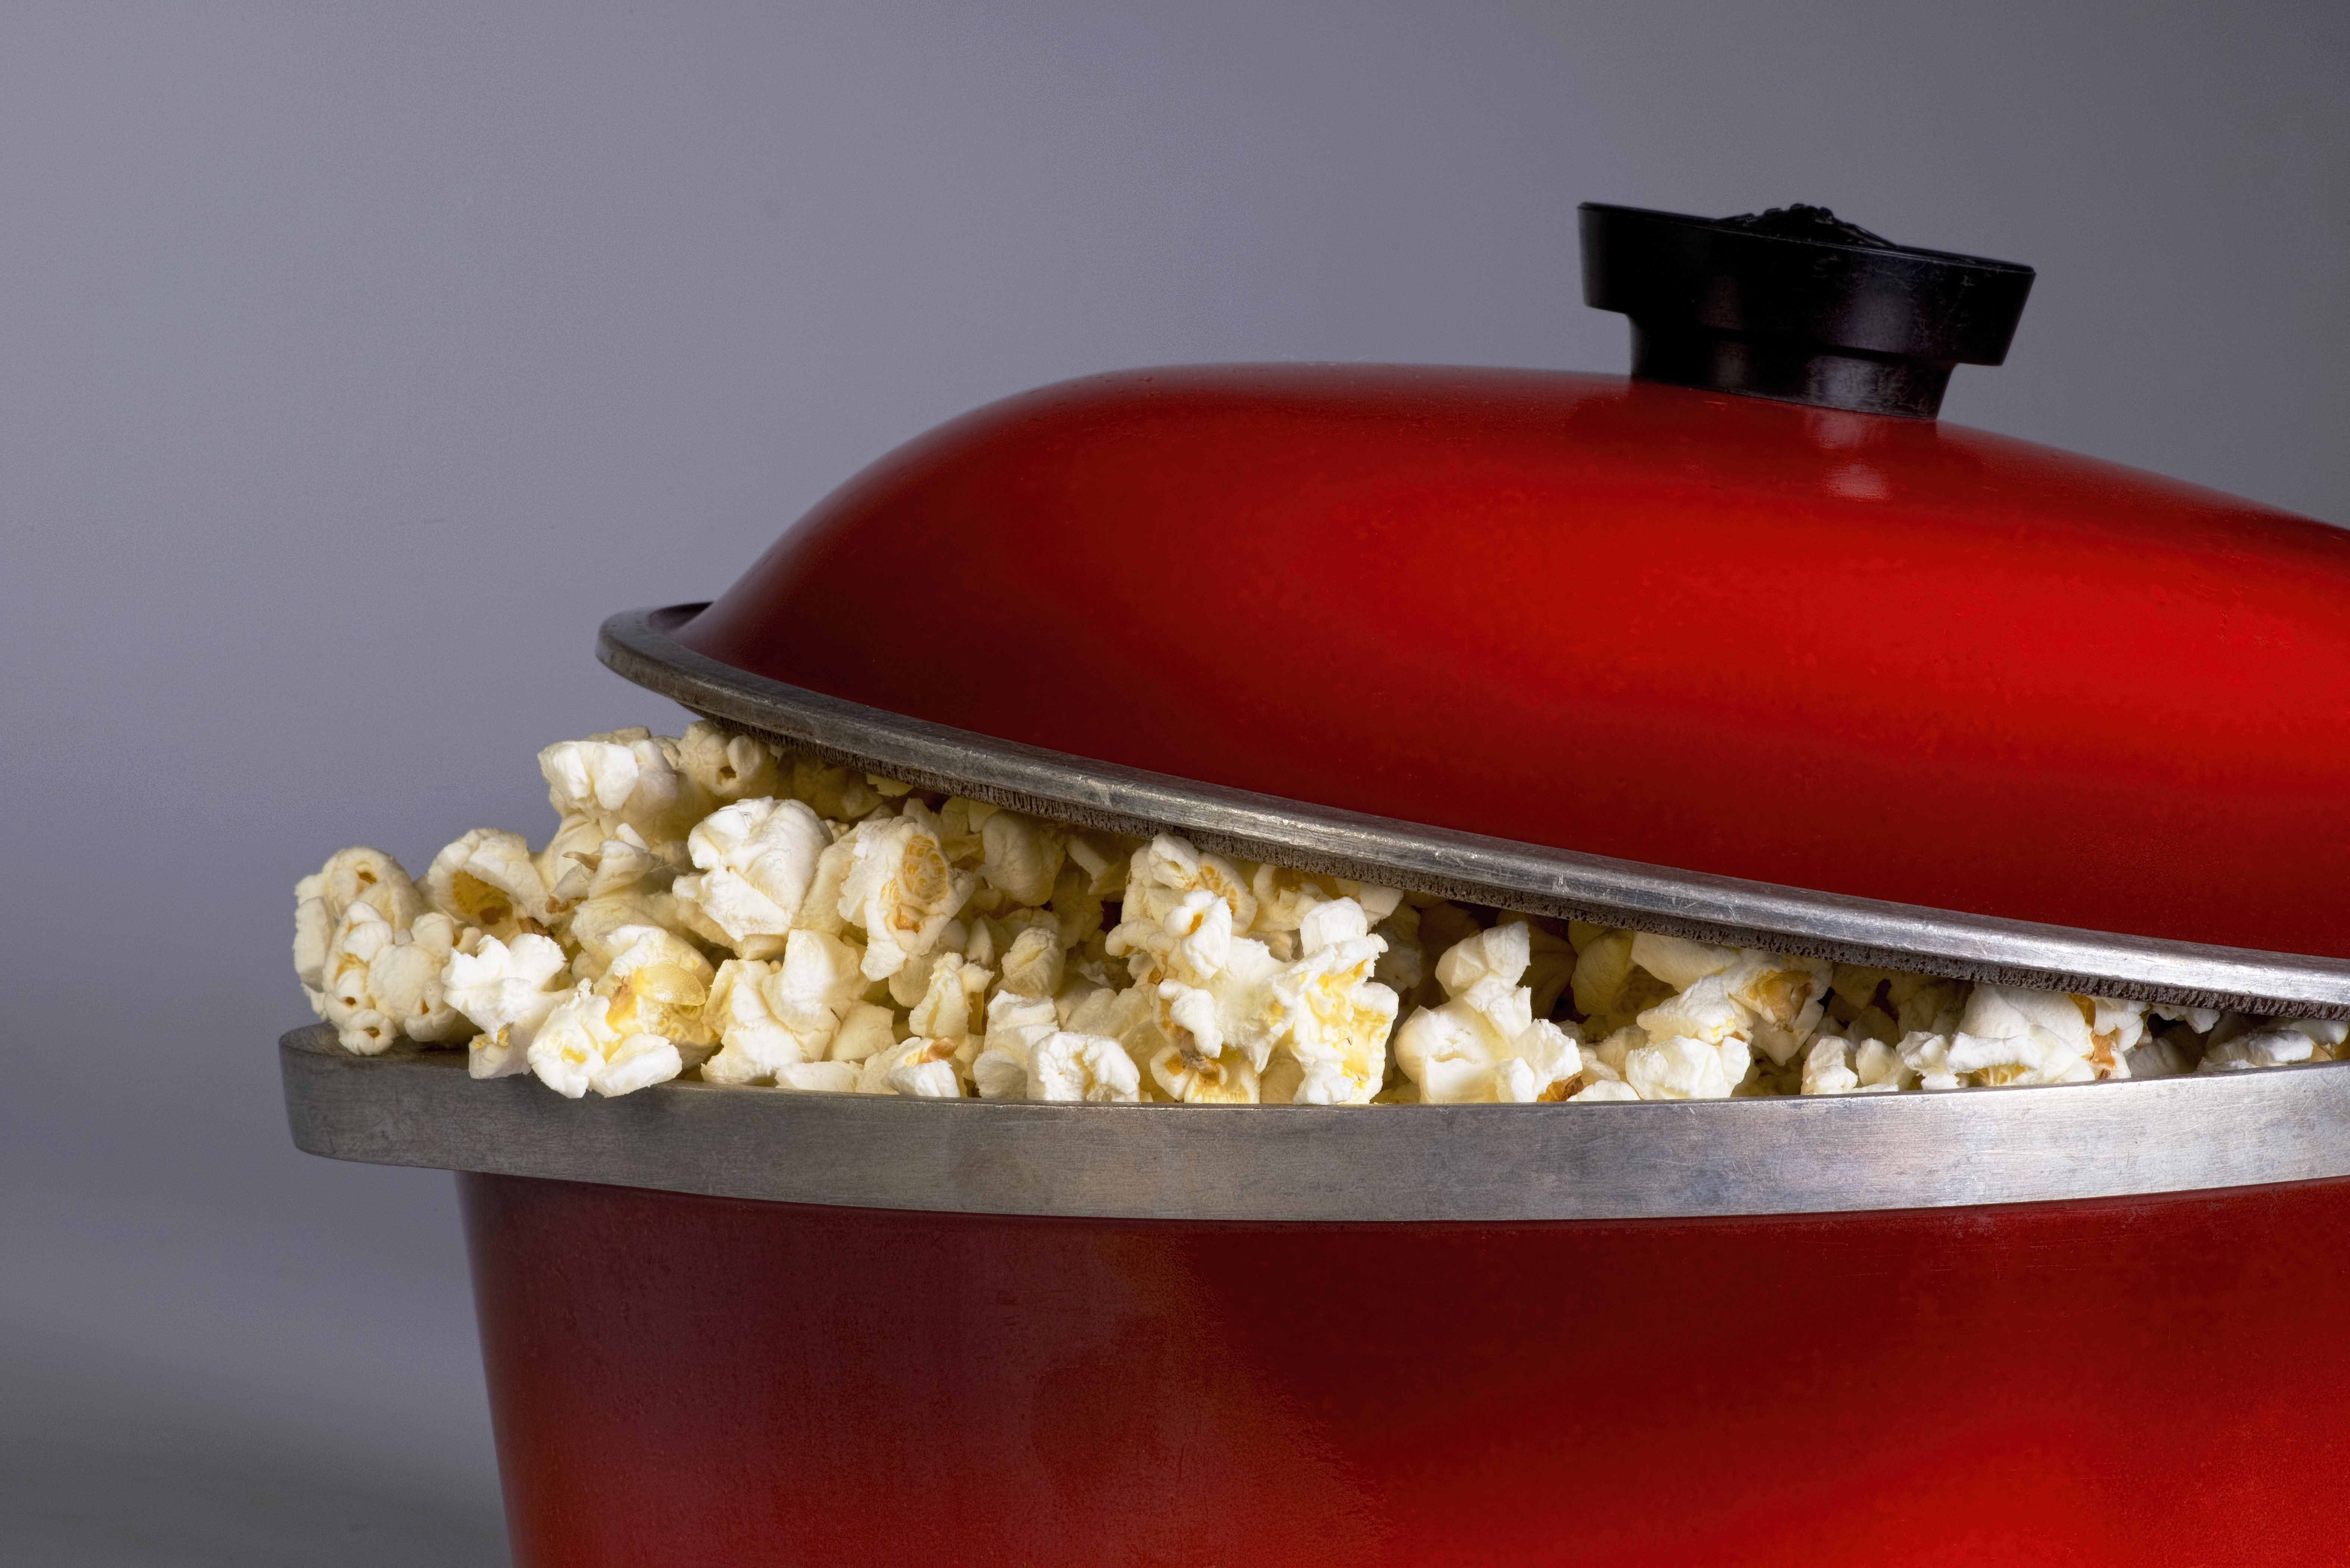 Popping popcorn the old fashion way in a red iron pot.